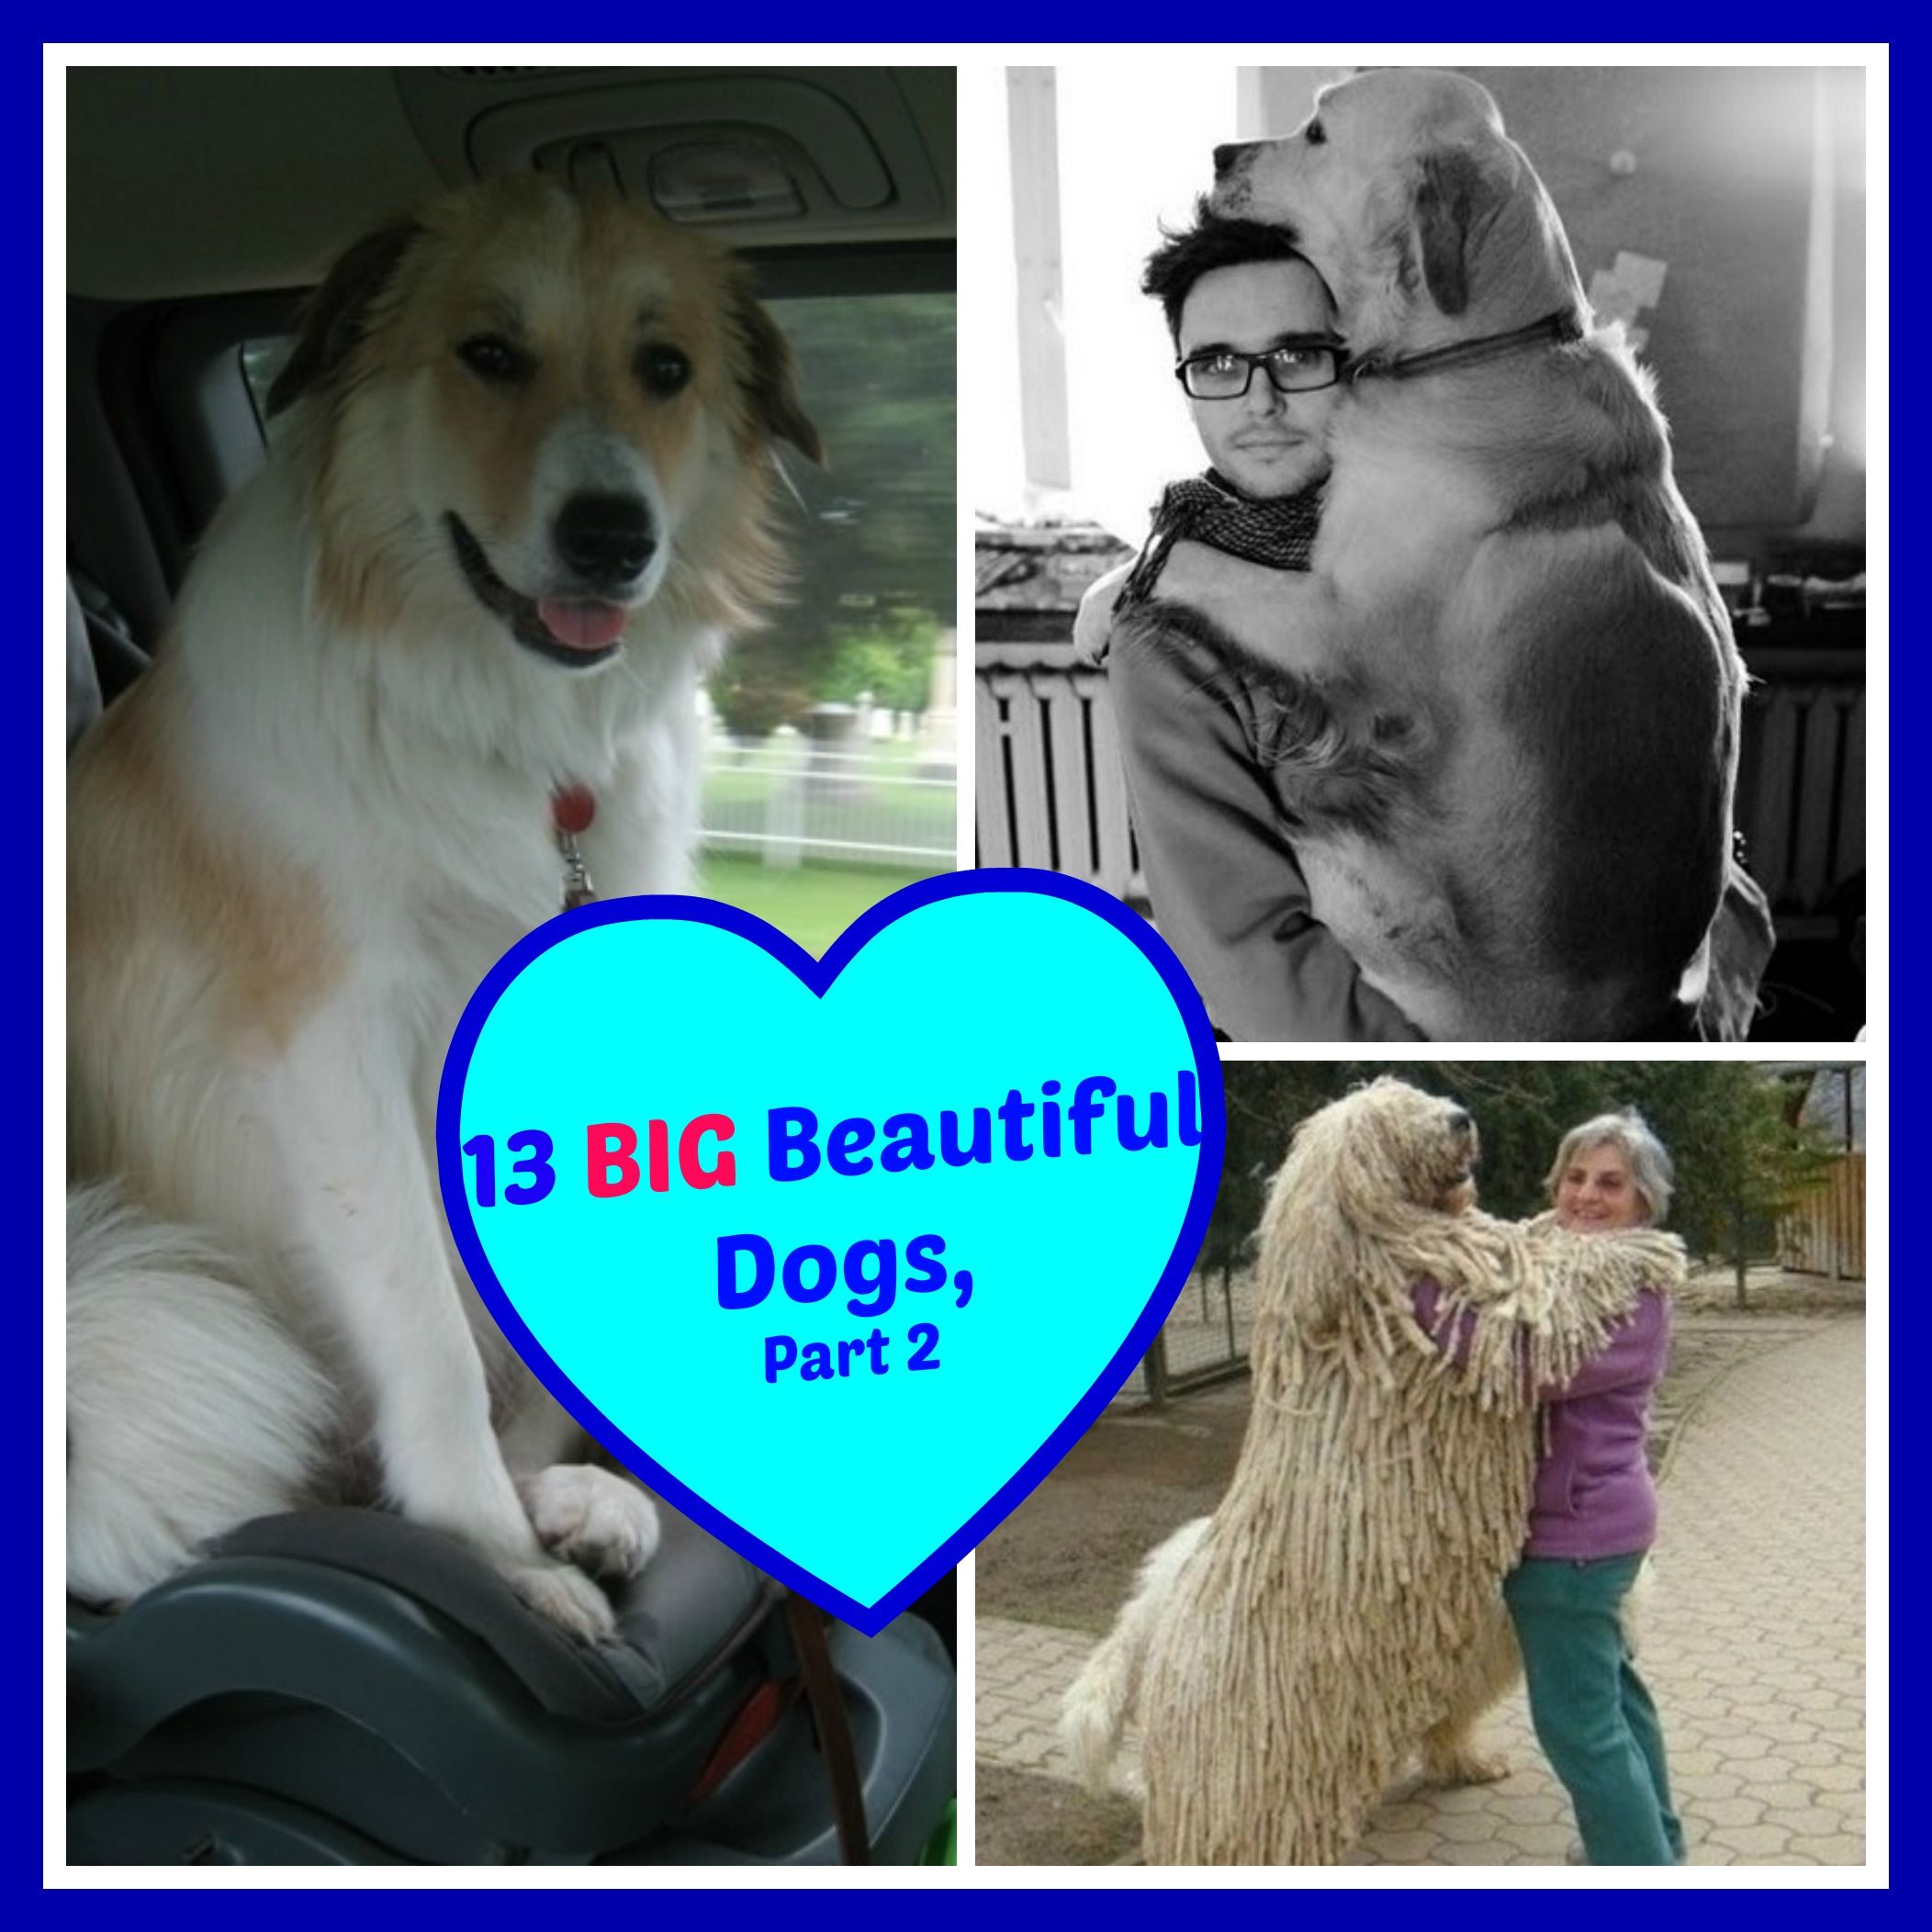 Check out all 13 photos of adorable over-sized pooches. Bet they'll make you pine, just a little, for a big beautiful dog!